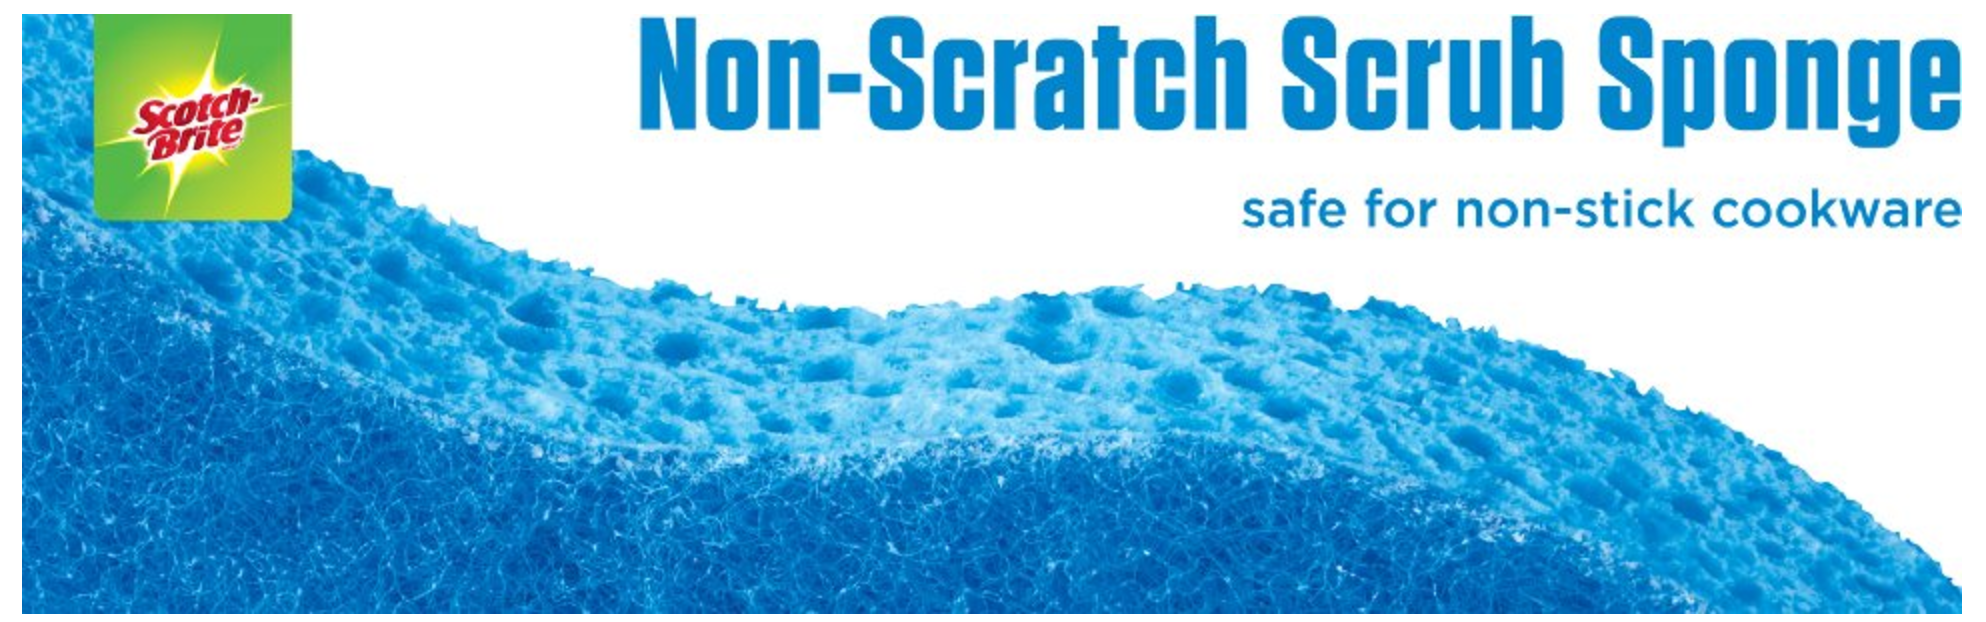 *WILL SELL OUT* Scotch-Brite Non-scratch Scrub Sponge, 3 Count (Pack of 8) as low as $9.04 shipped!